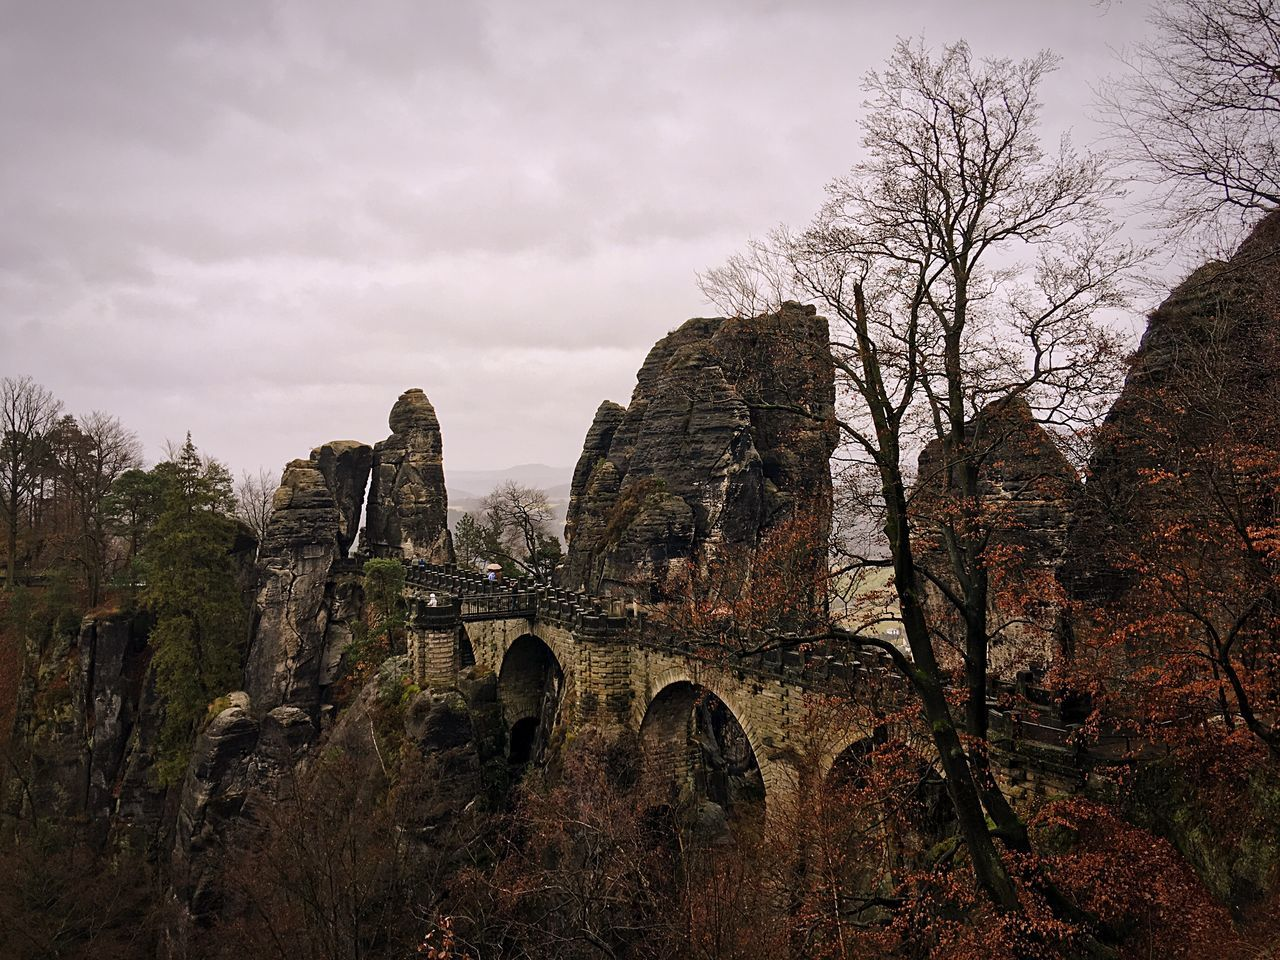 ShotOnIphone IPhoneography Shotoniphone6splus EyeEm Bastei Basteibrücke Nature Elbe Travel Destinations Travel Wanderlust Built Structure Ancient Geology Sandstone Mountains History Trees Winter Fall Orange Cretaceous